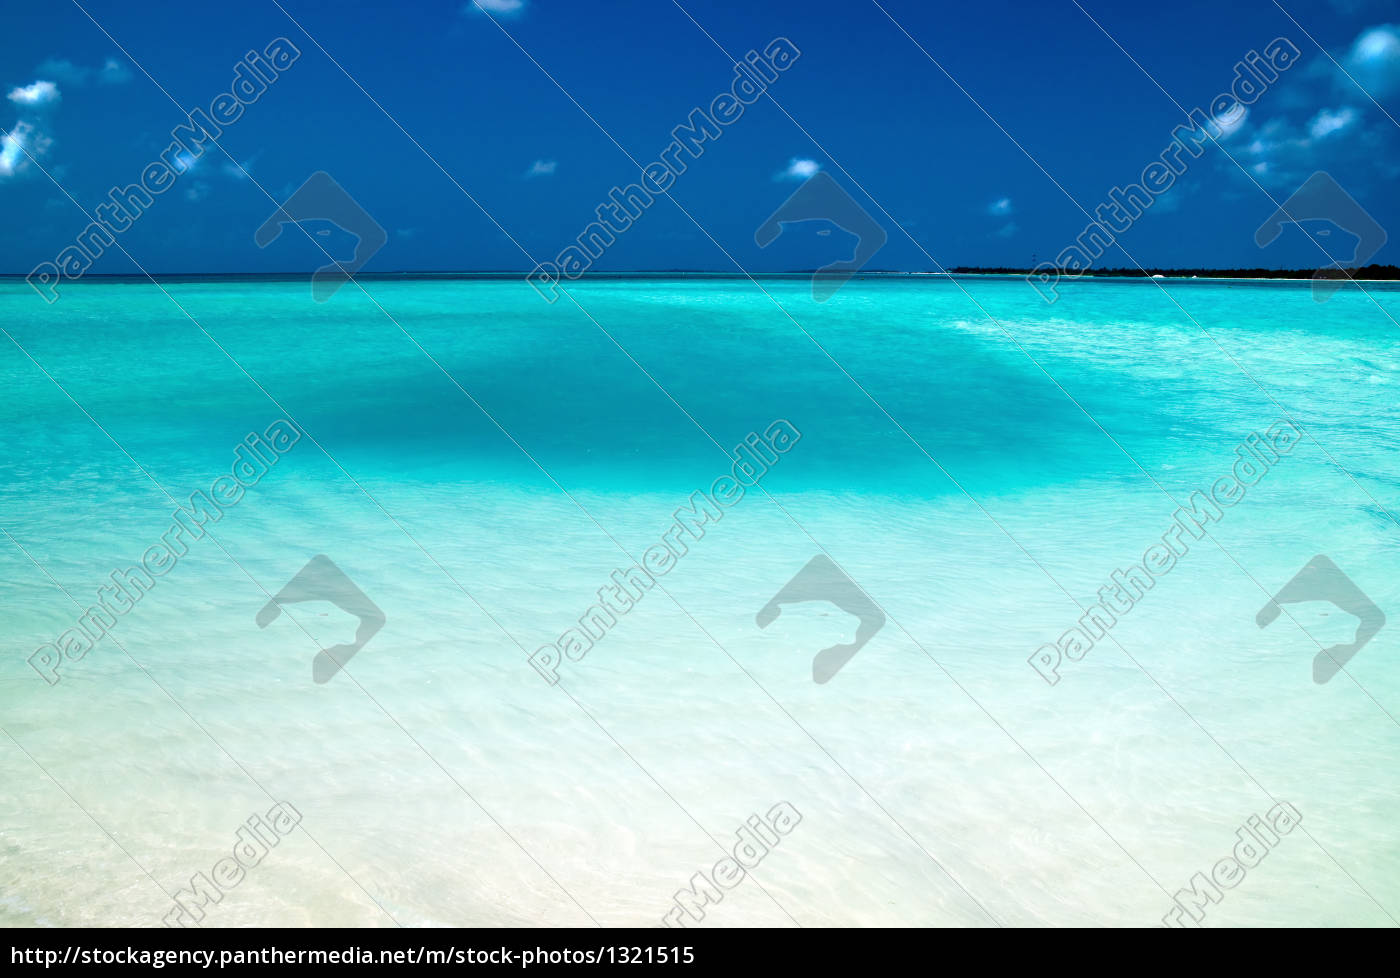 beach, tongue, with, turquoise, water - 1321515